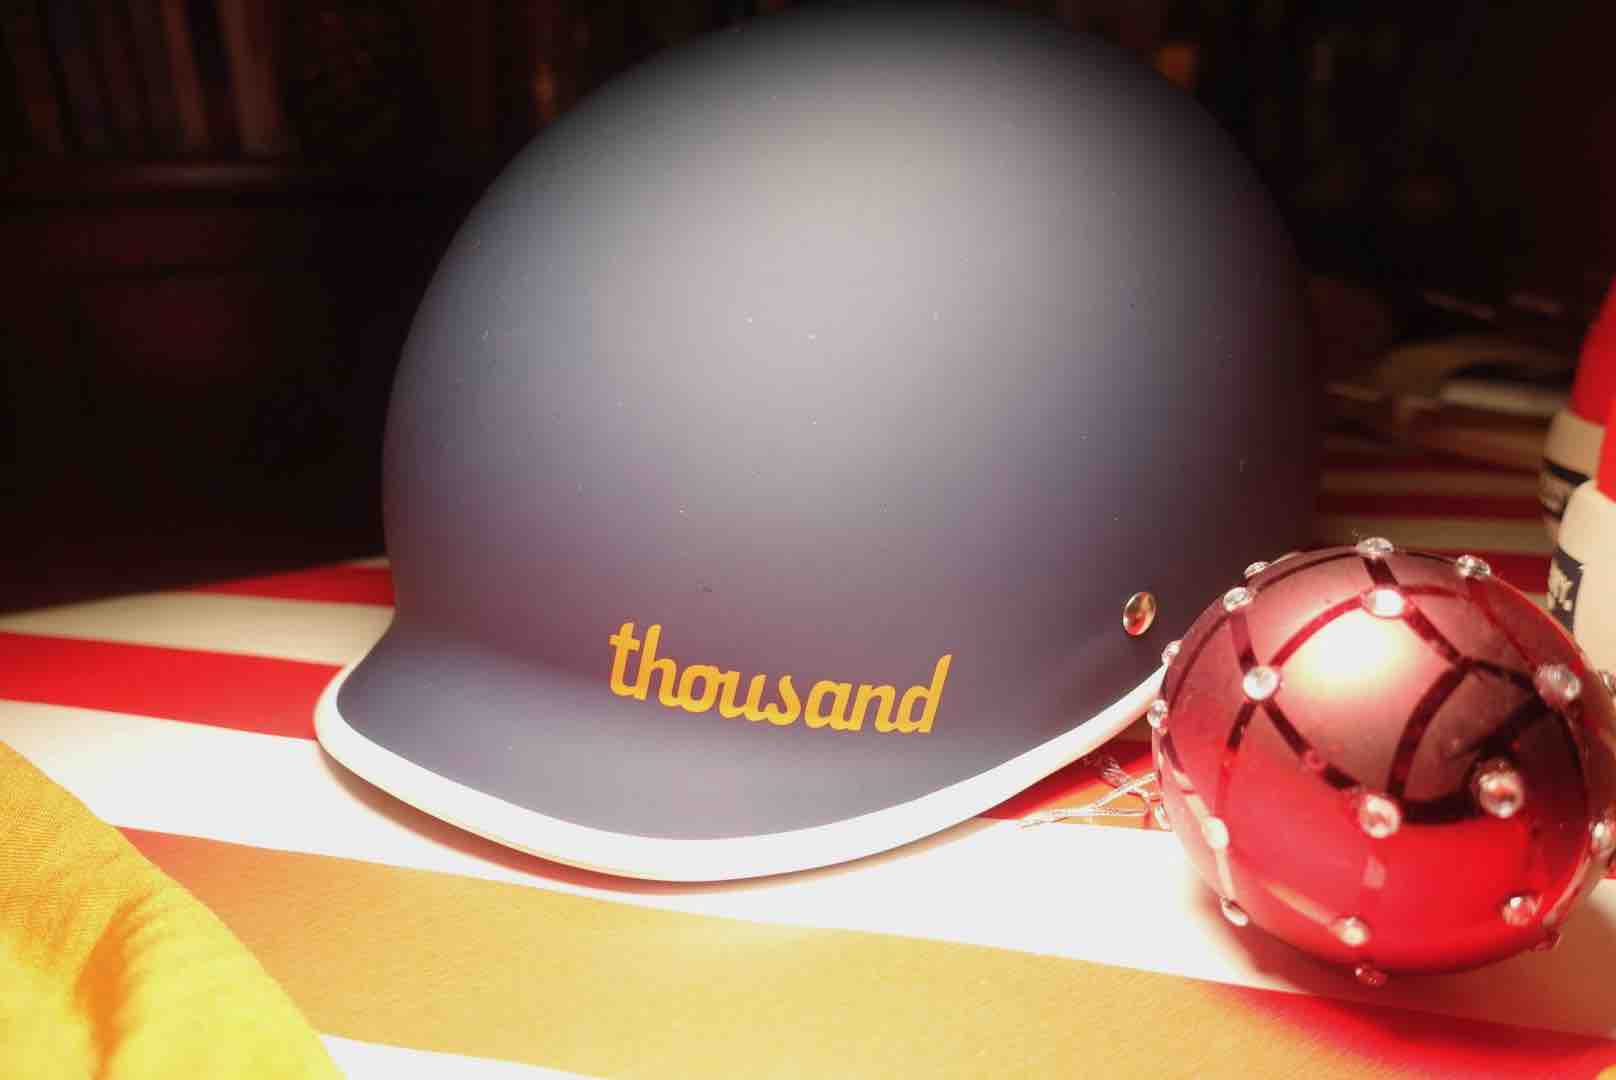 Thousand Heritage Helmet Is A Stylish Gift For Outdoor Sports